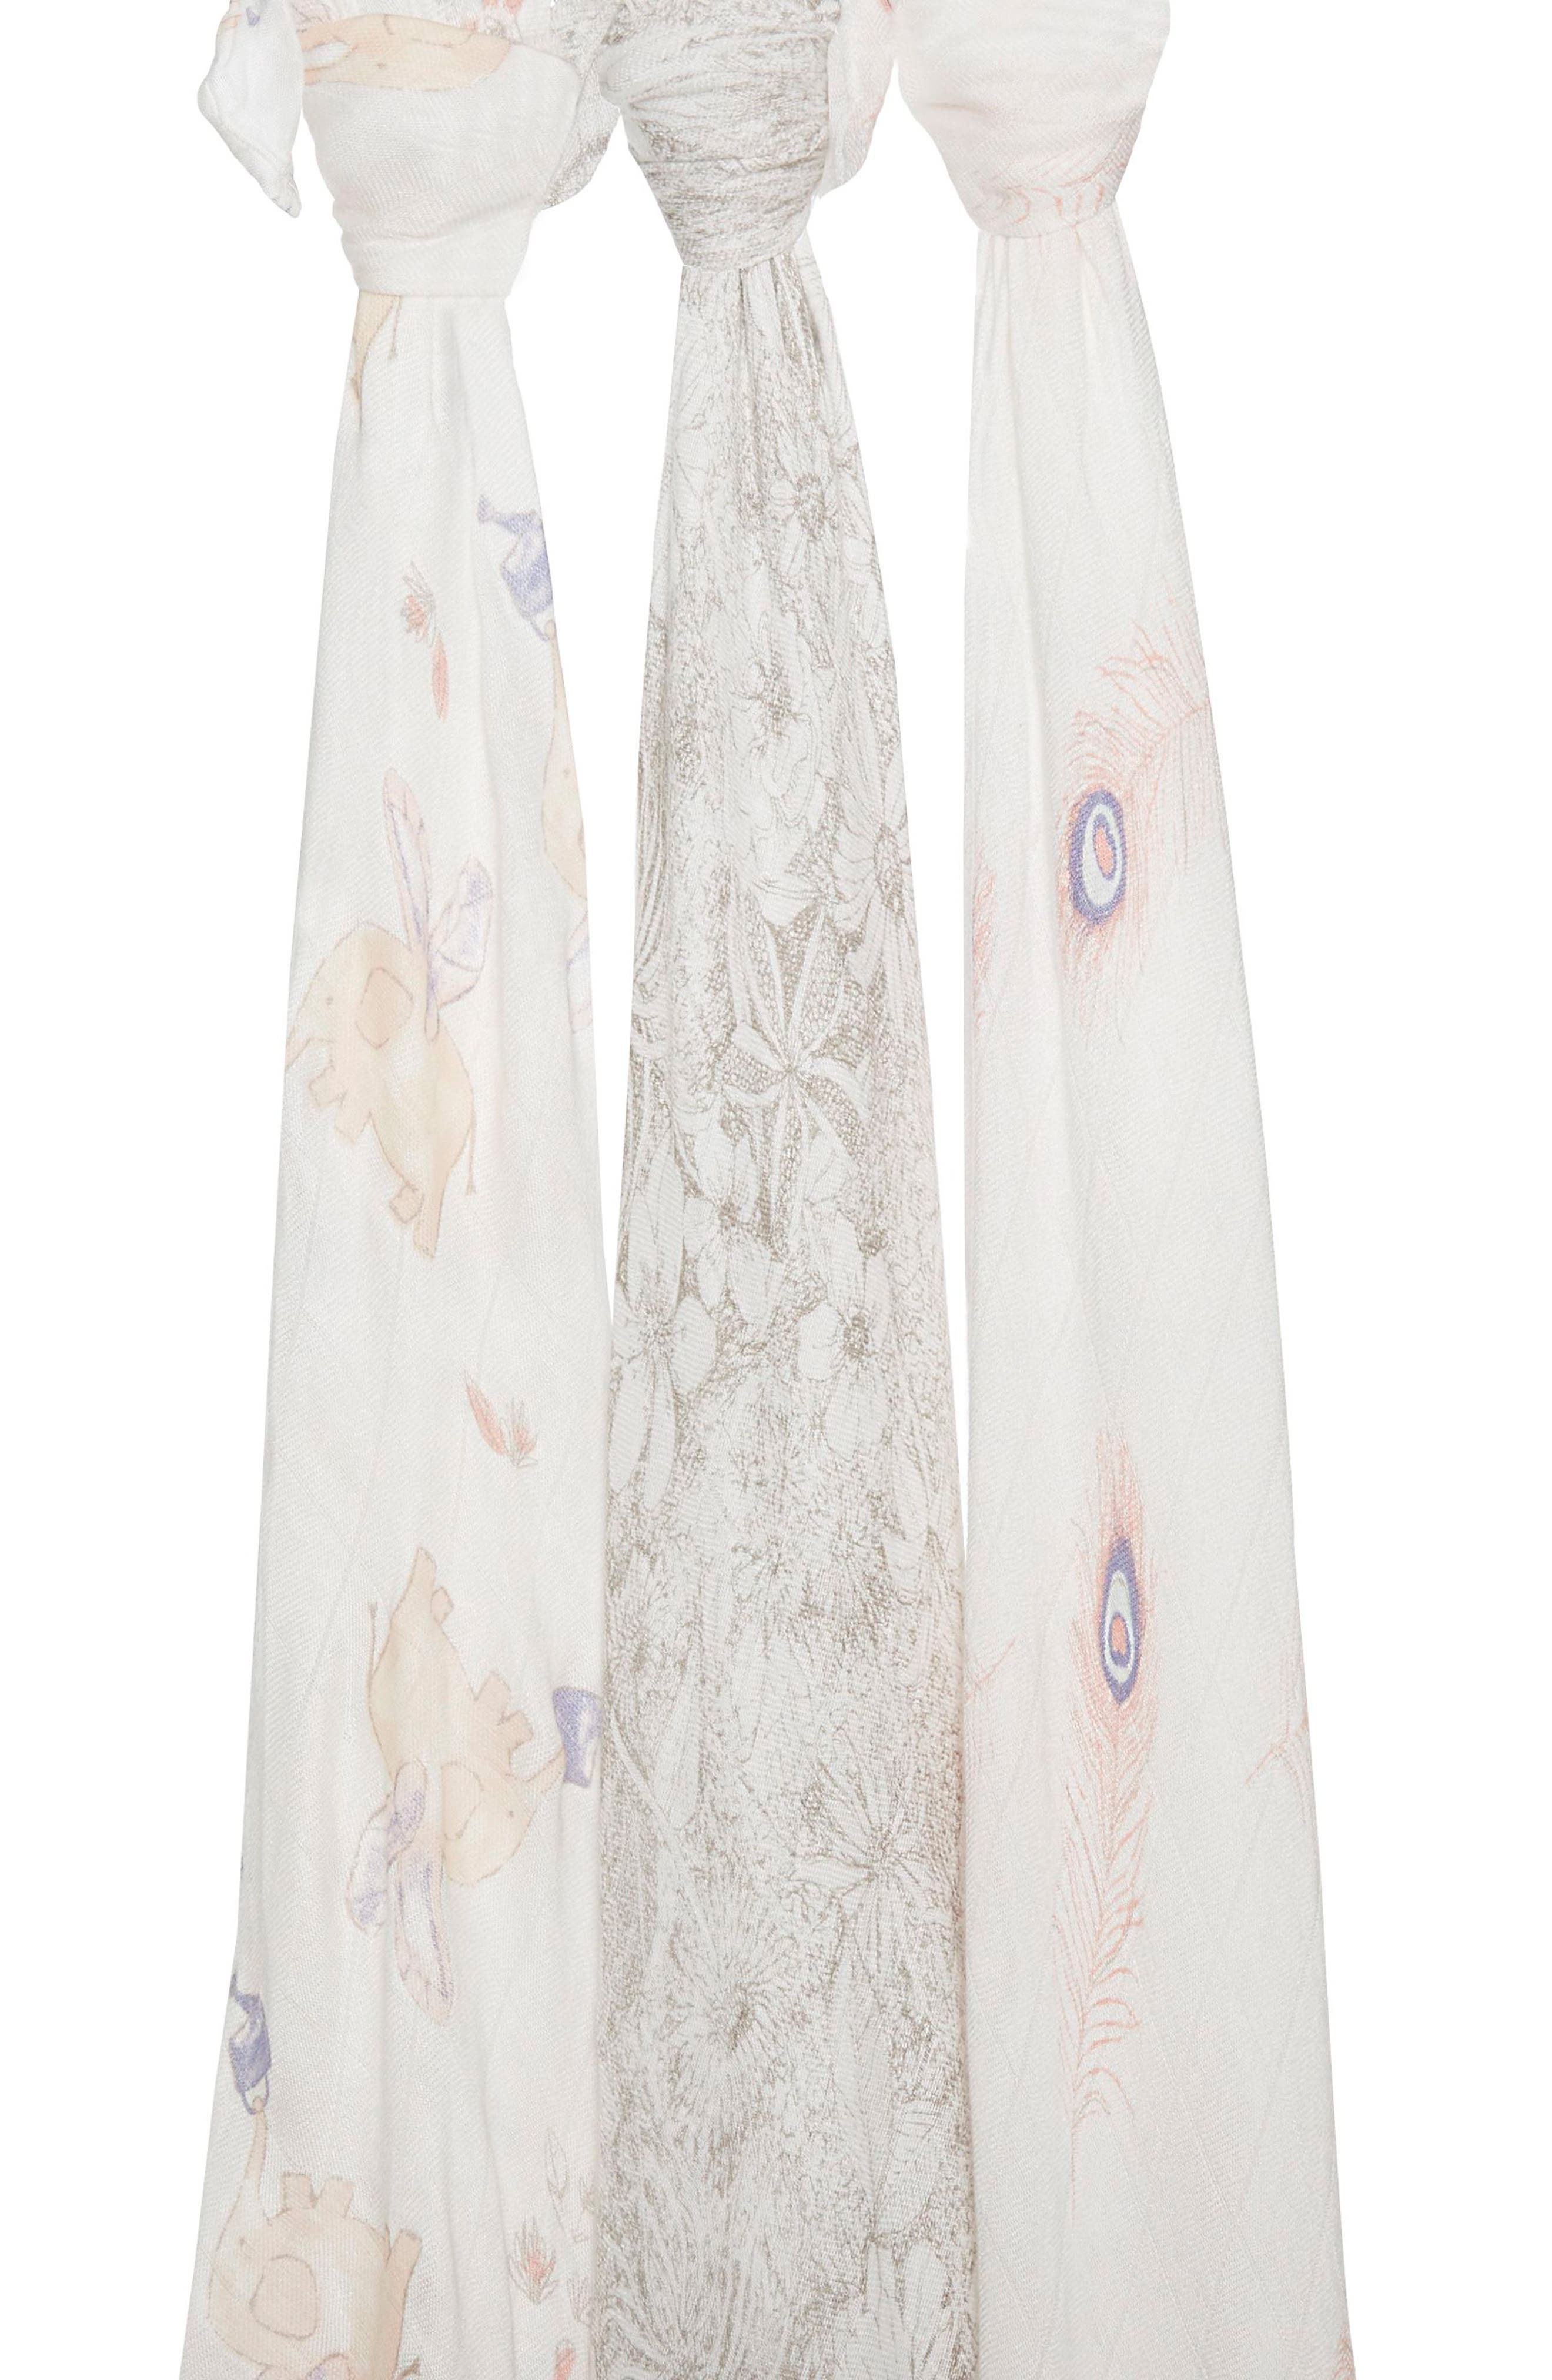 aden + anais 3-Pack Swaddling Cloths